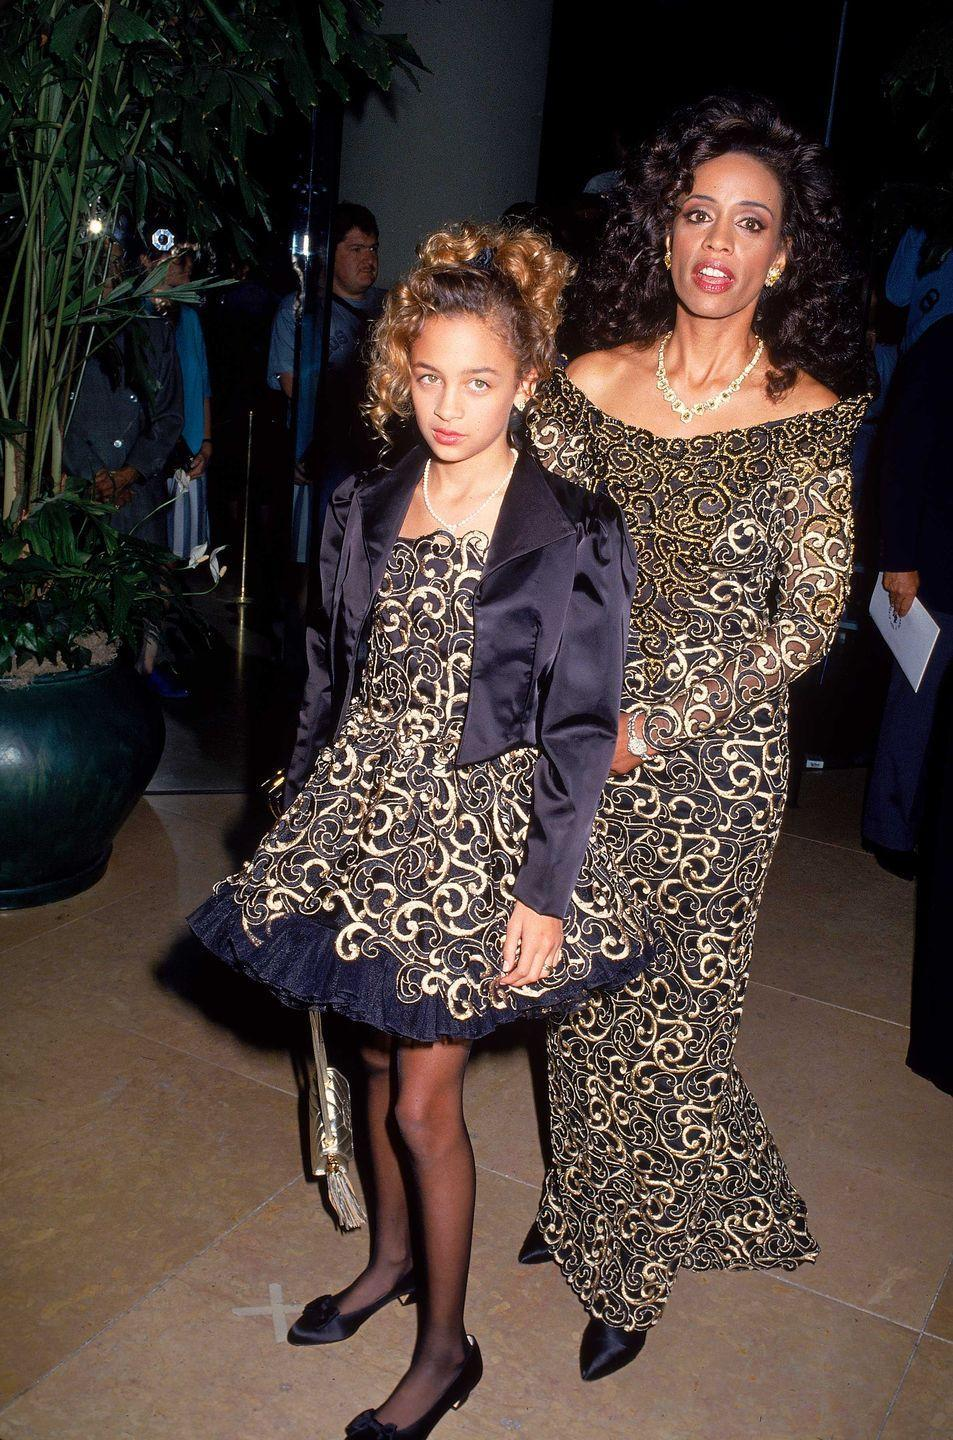 <p>Matching dresses for a young Nicole Richie and mother Brenda Harvey Richie at an event in 1992. </p>